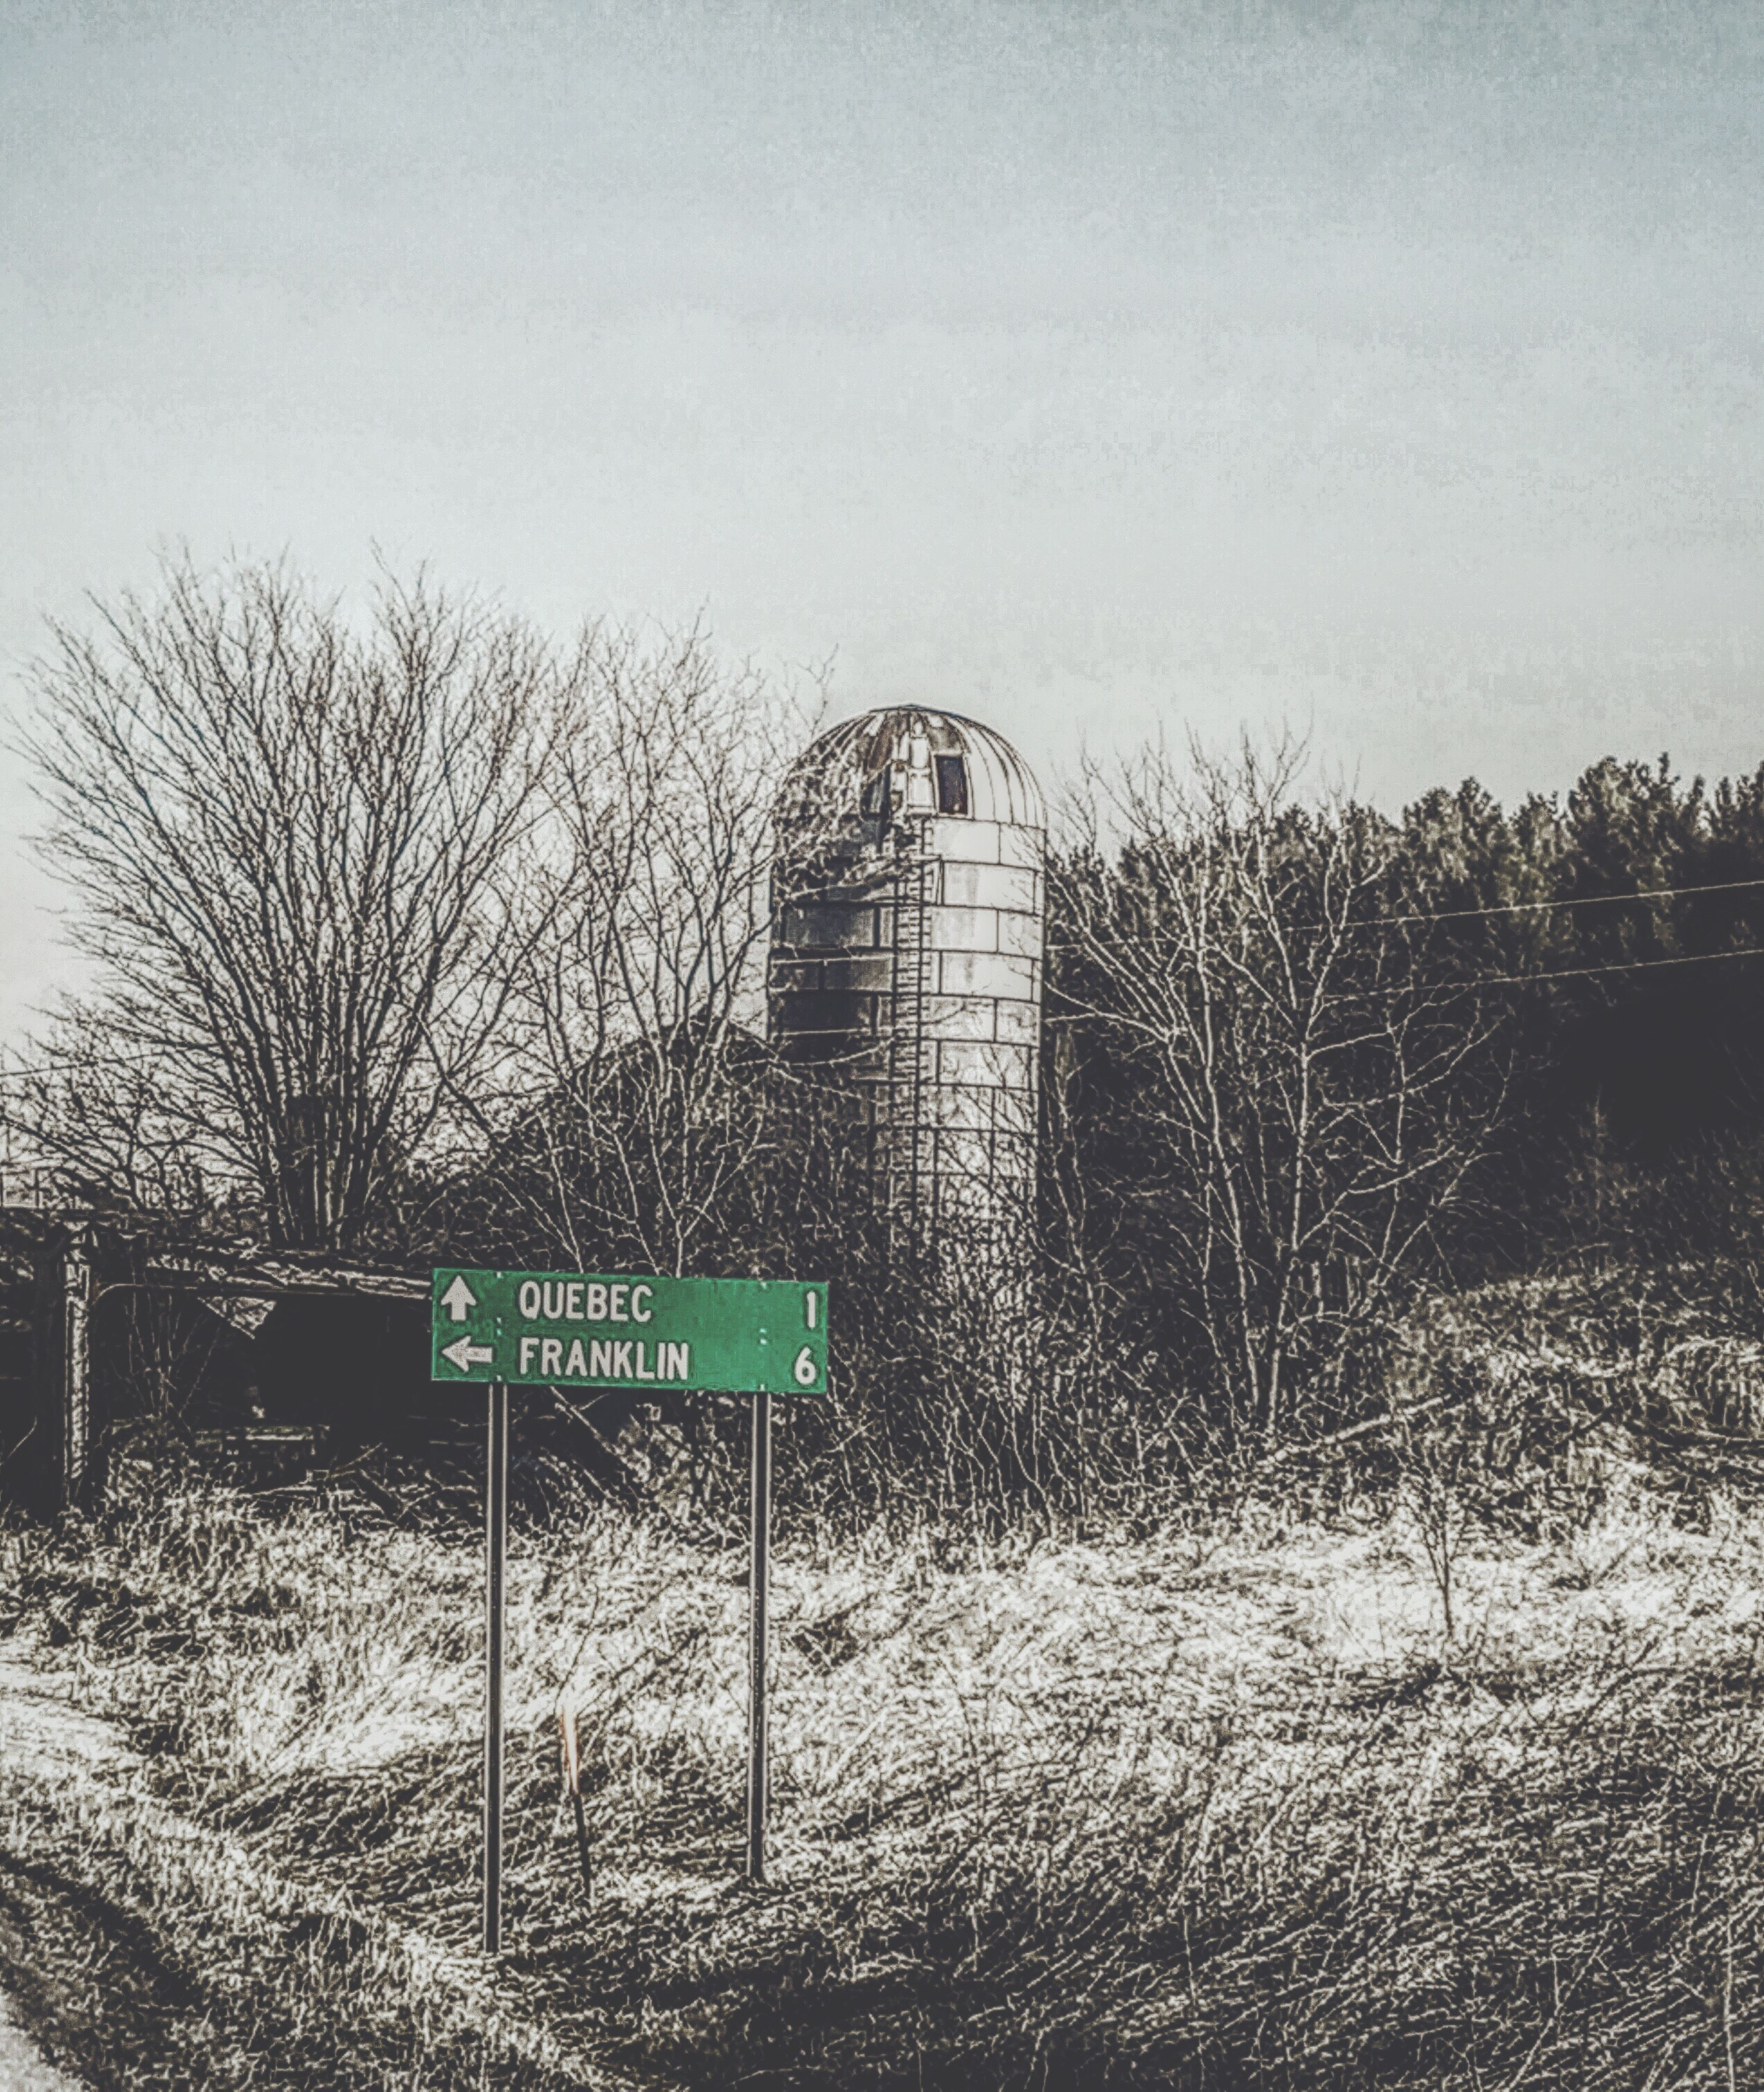 grass, clear sky, field, tree, fence, text, sky, protection, plant, safety, day, built structure, absence, outdoors, western script, no people, empty, communication, information sign, nature